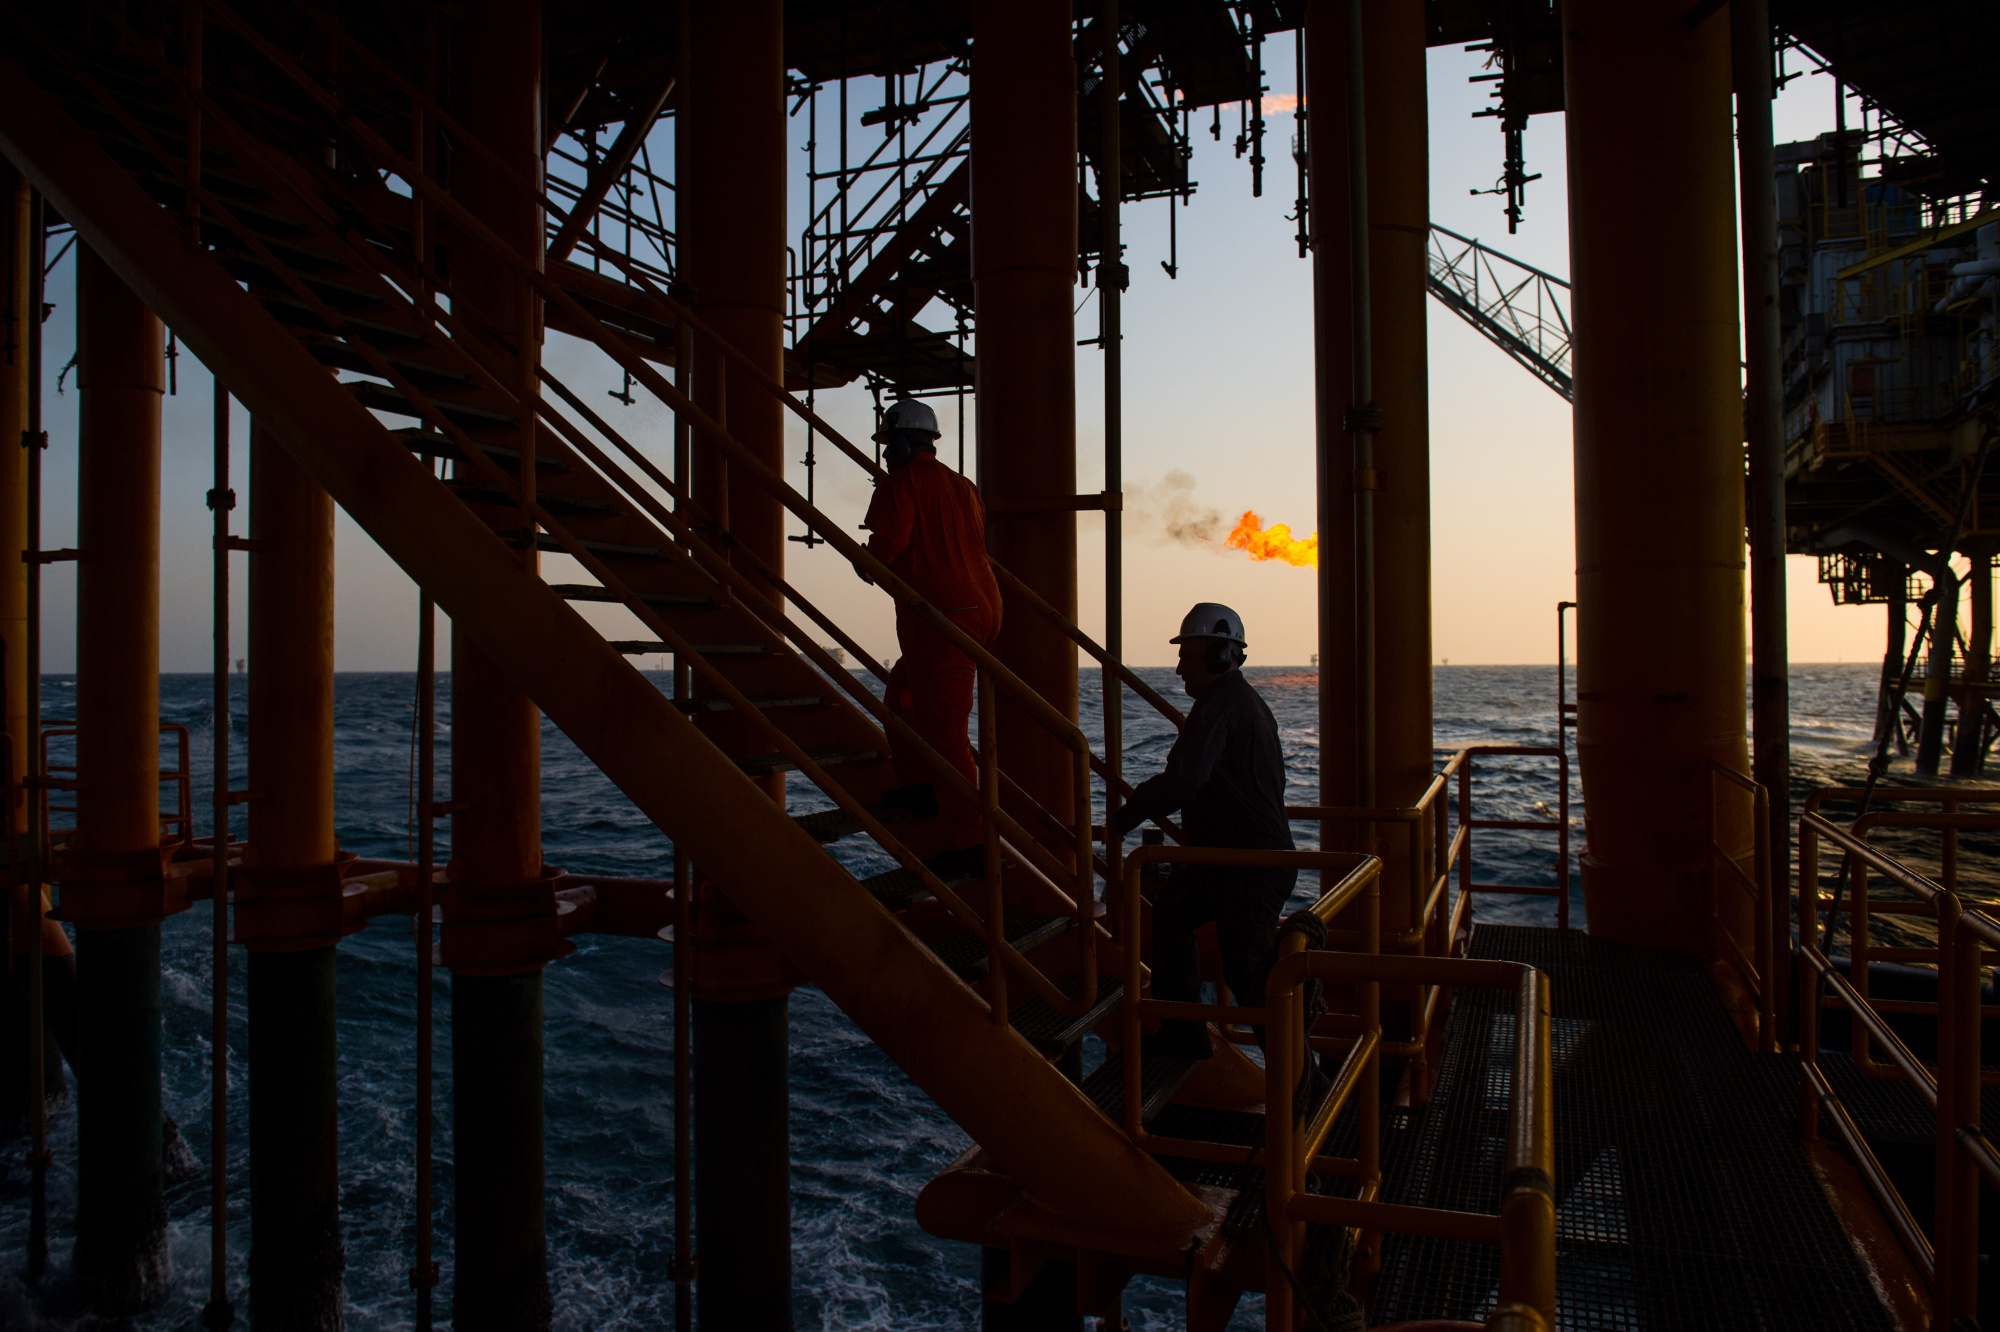 Workers climb stairs from a lower deck aboard an offshore oil platform in the Persian Gulf's Salman Oil Field, operated by the National Iranian Offshore Oil Co., near Lavan island, Iran, on Thursday, Jan. 5. 2017. Nov. 5 is the day when sweeping U.S. sanctions on Iran's energy and banking sectors go back into effect after Trump's decision in May to walk away from the six-nation deal with Iran that suspended them. Photographer: Ali Mohammadi/Bloomberg